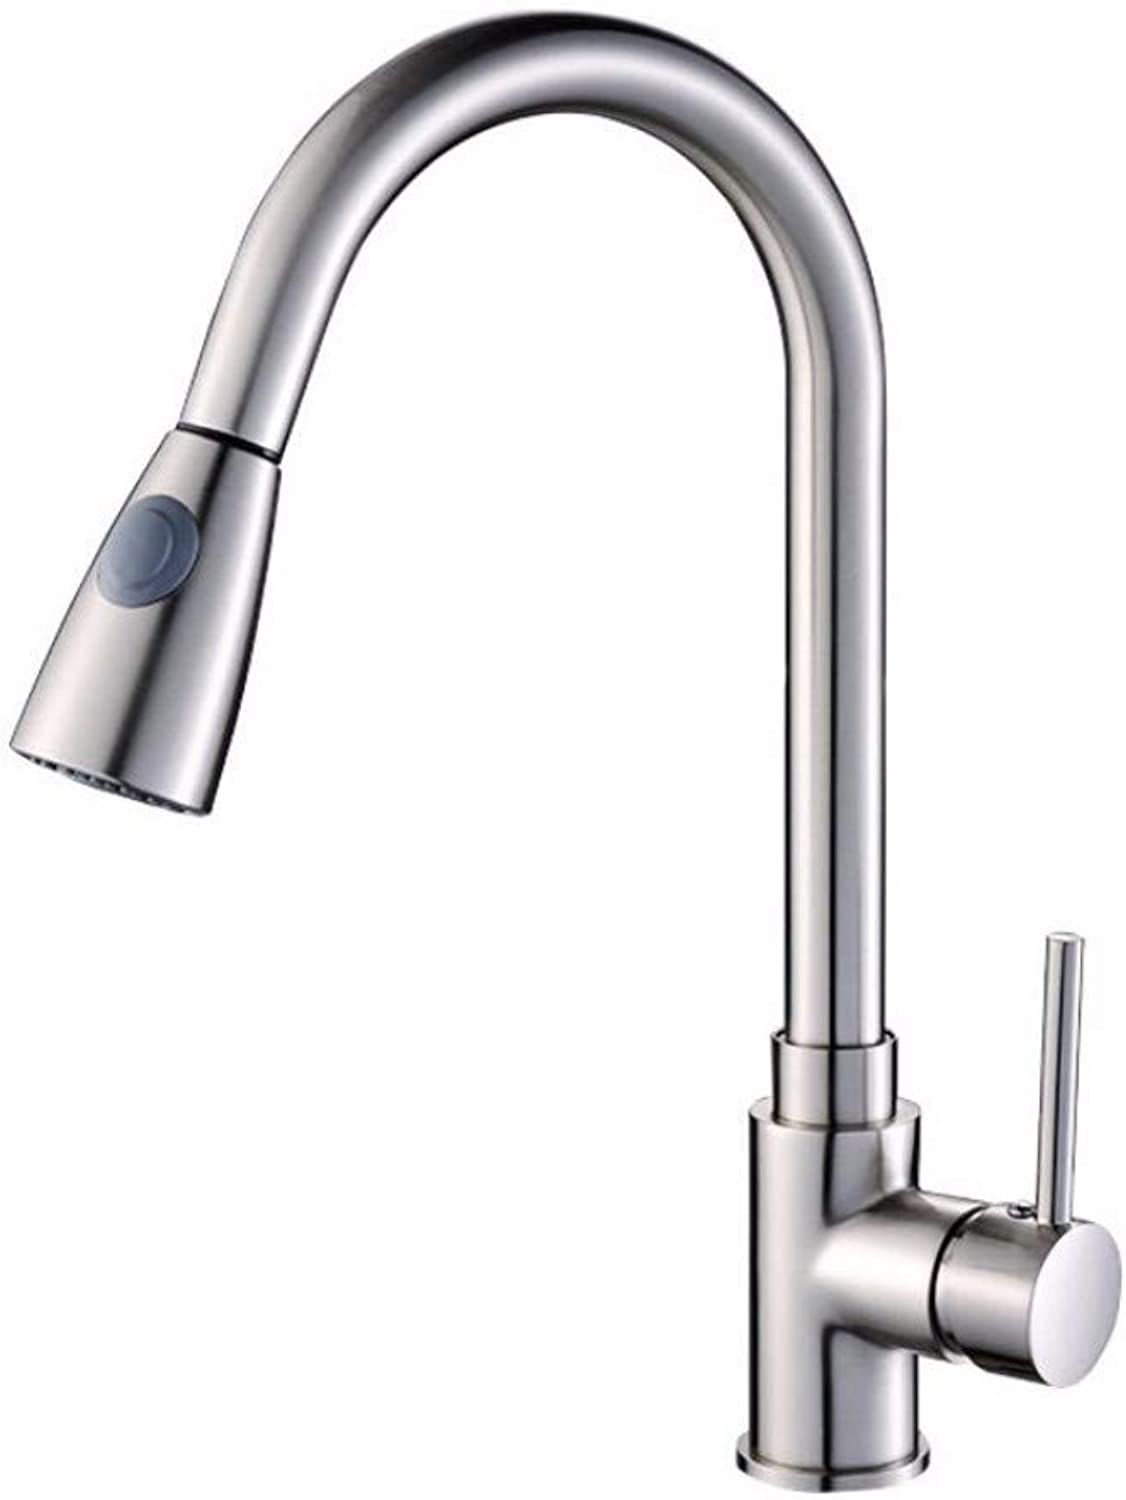 ZPSPZ kitchen mixer tap Kitchen Faucet Wire Drawing Faucet Cold and hot Water Faucet Sink Pulling Faucet